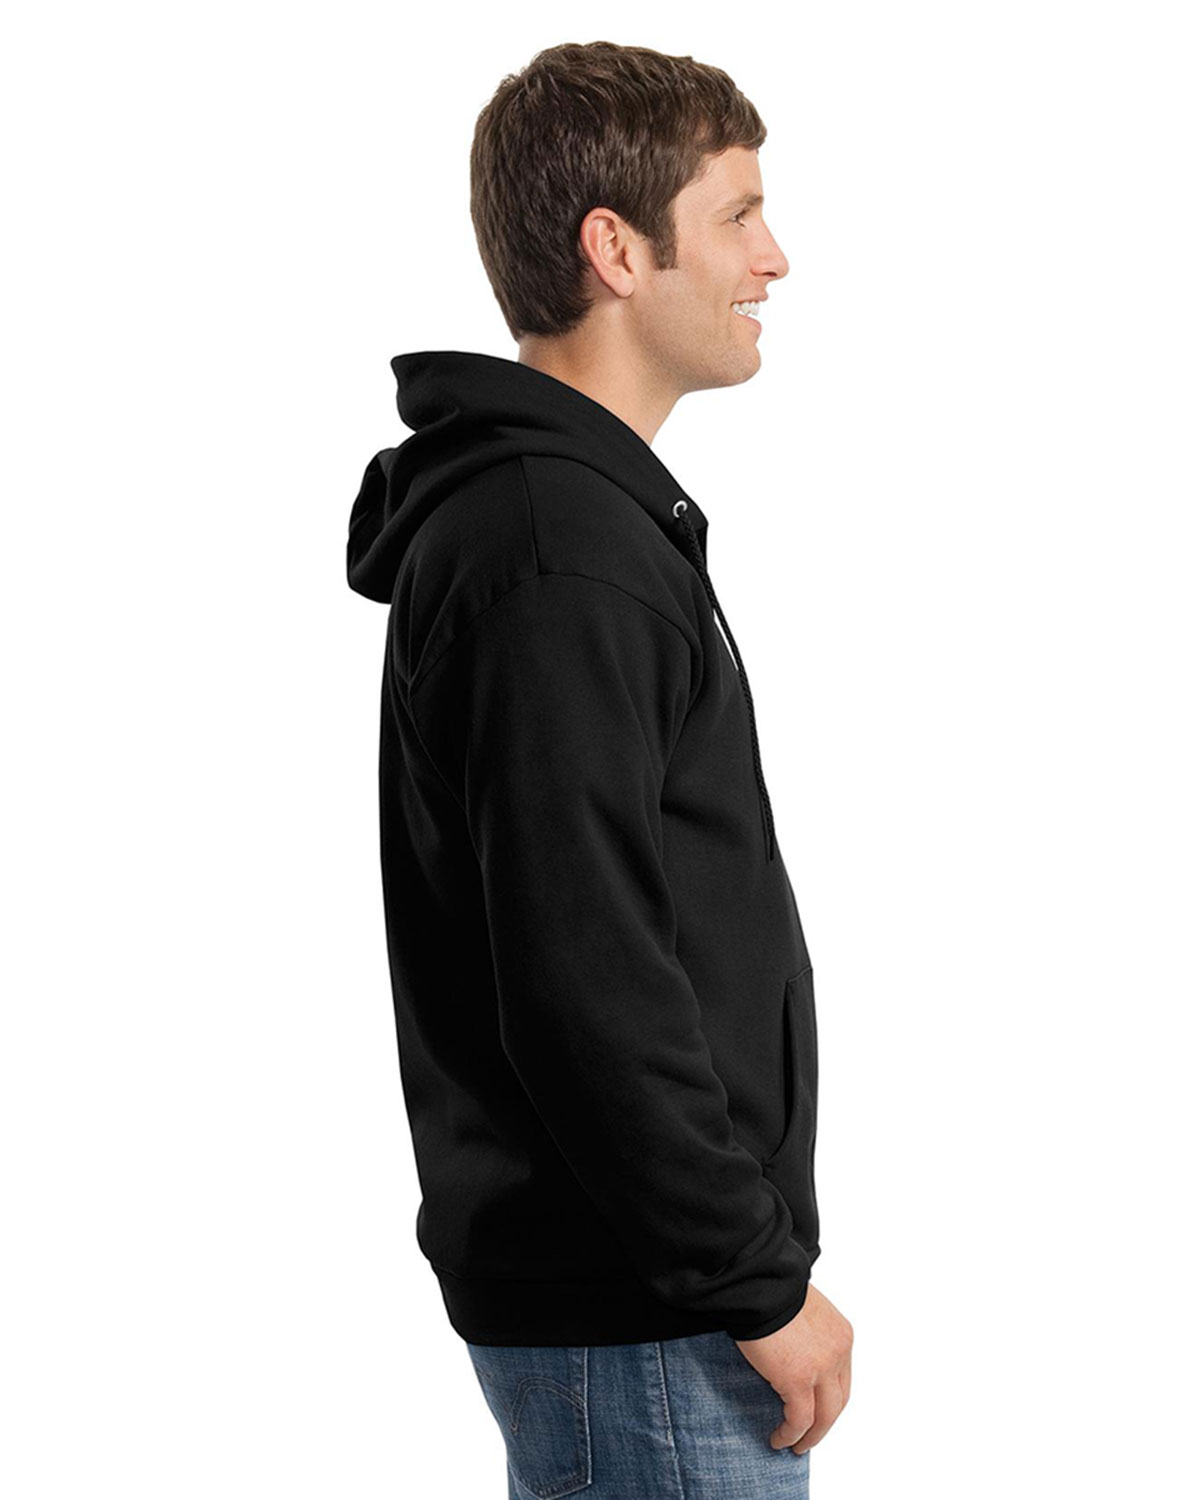 Mens Full Zip Hooded Sweatshirts At Big And Tall Apparel Store